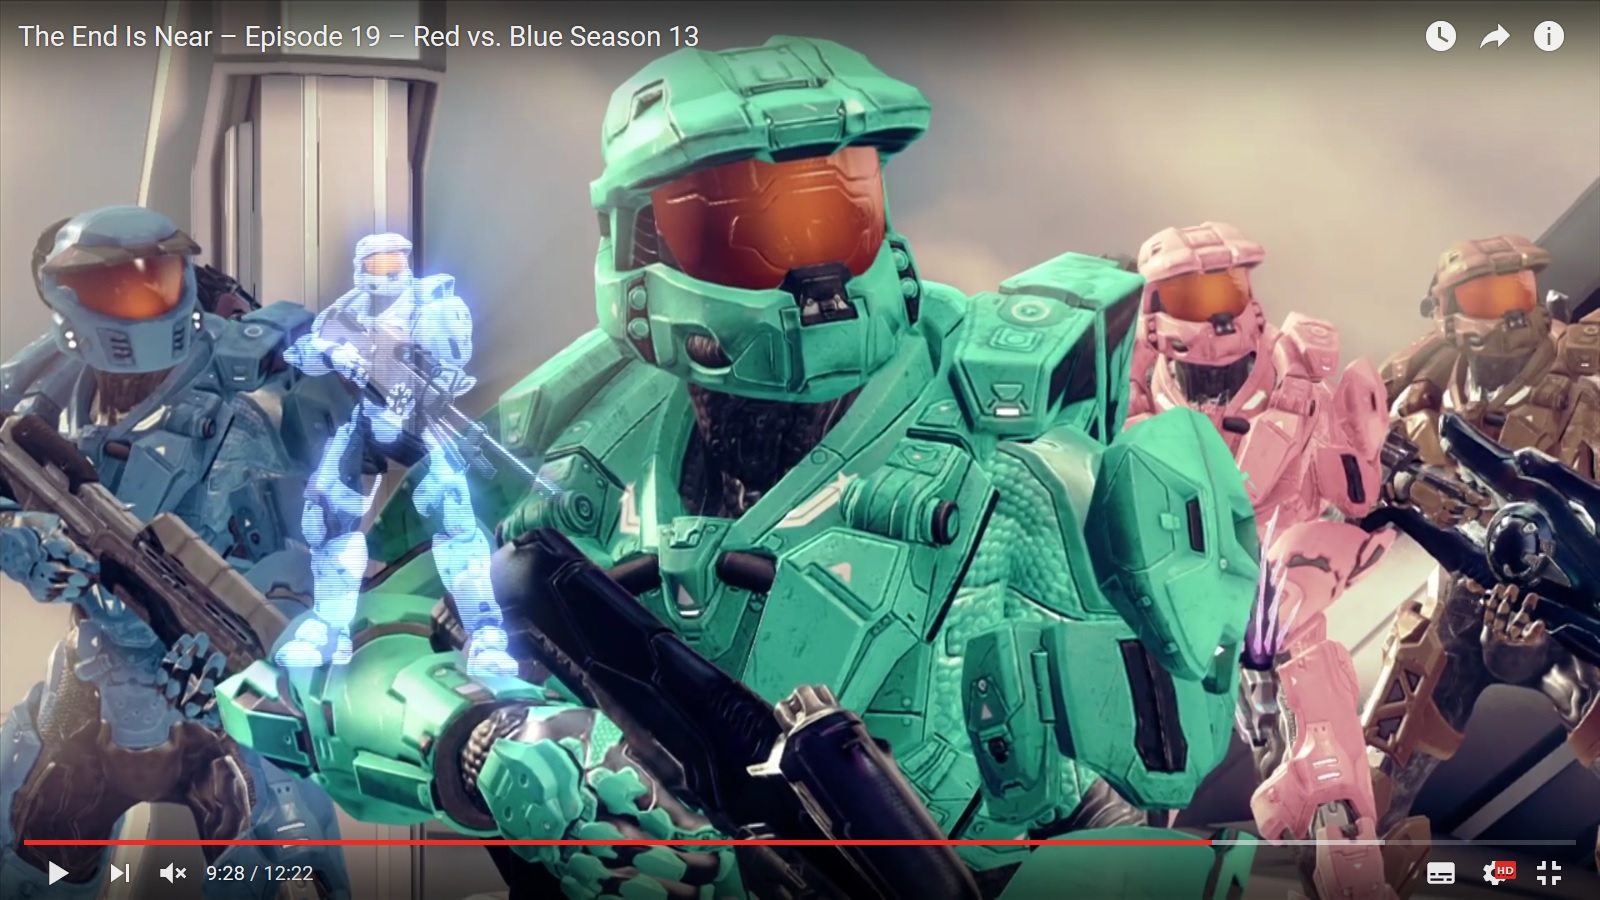 Halo Dramedy in Rot und Blau? – RED vs BLUE